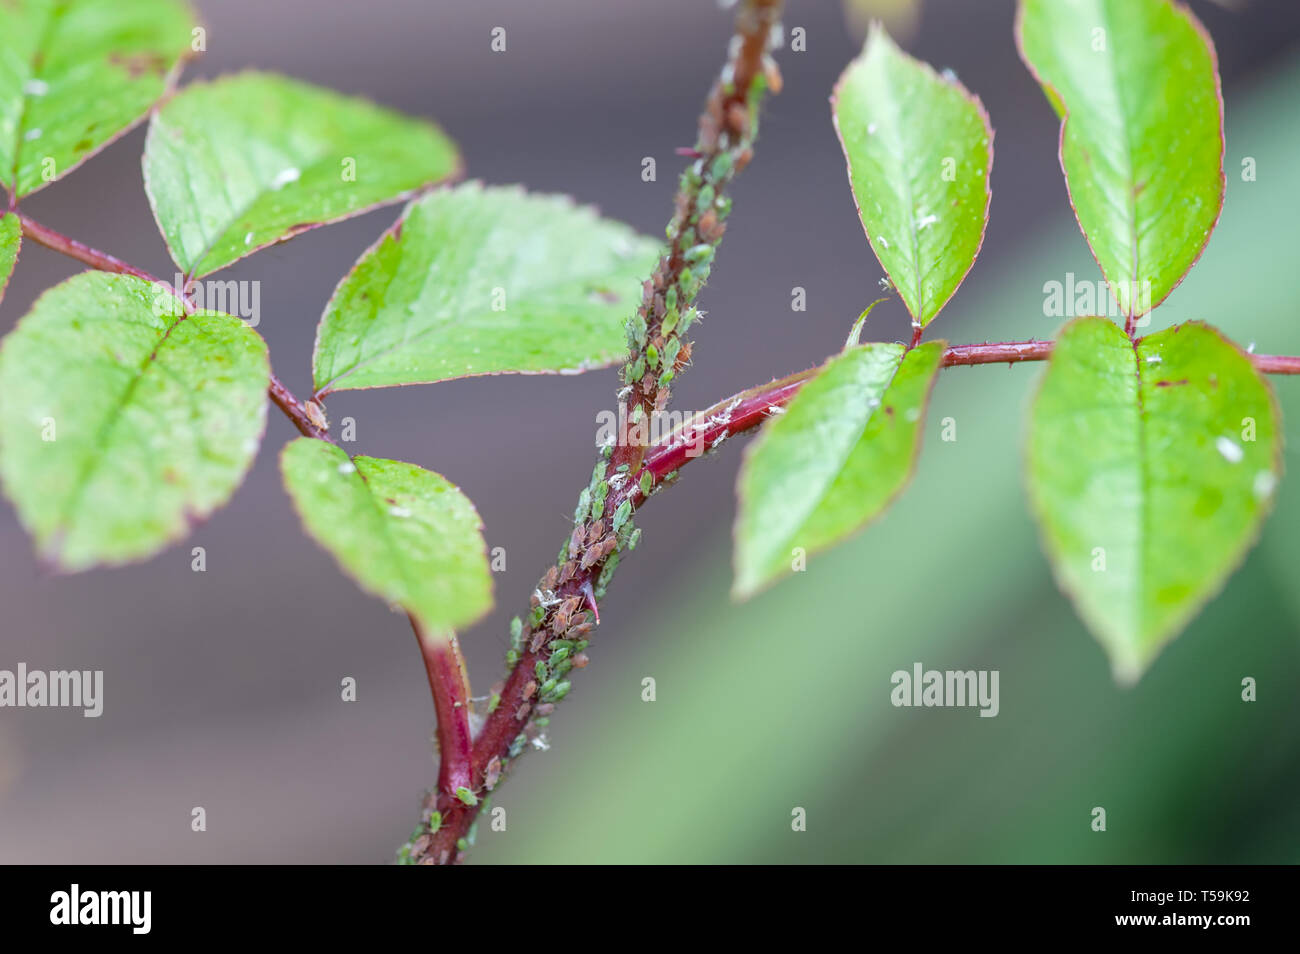 Rose stems covered in aphids. - Stock Image